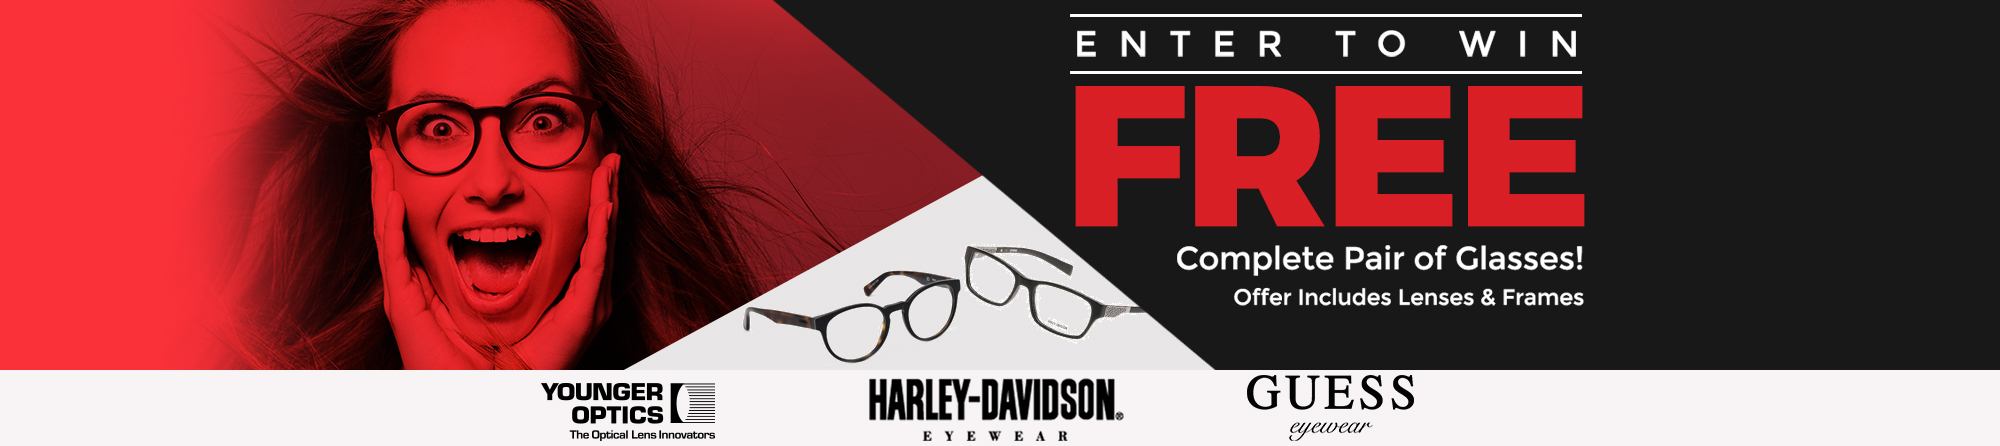 Enter to win free glasses